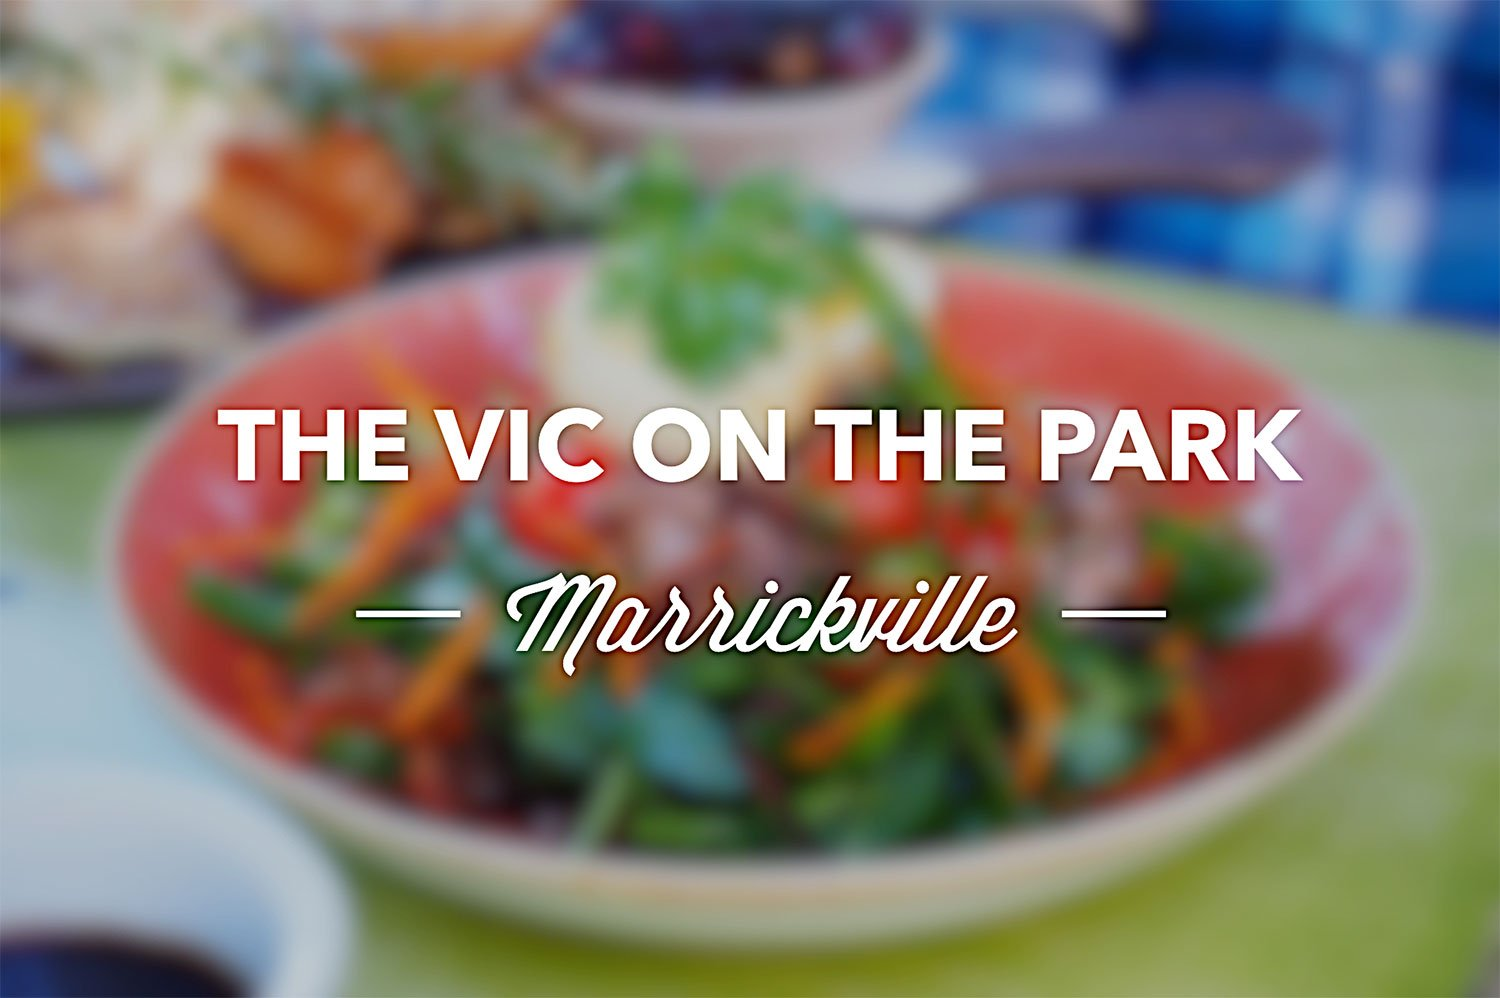 Sydney Food Blog Review of The Vic on the Park, Marrickville